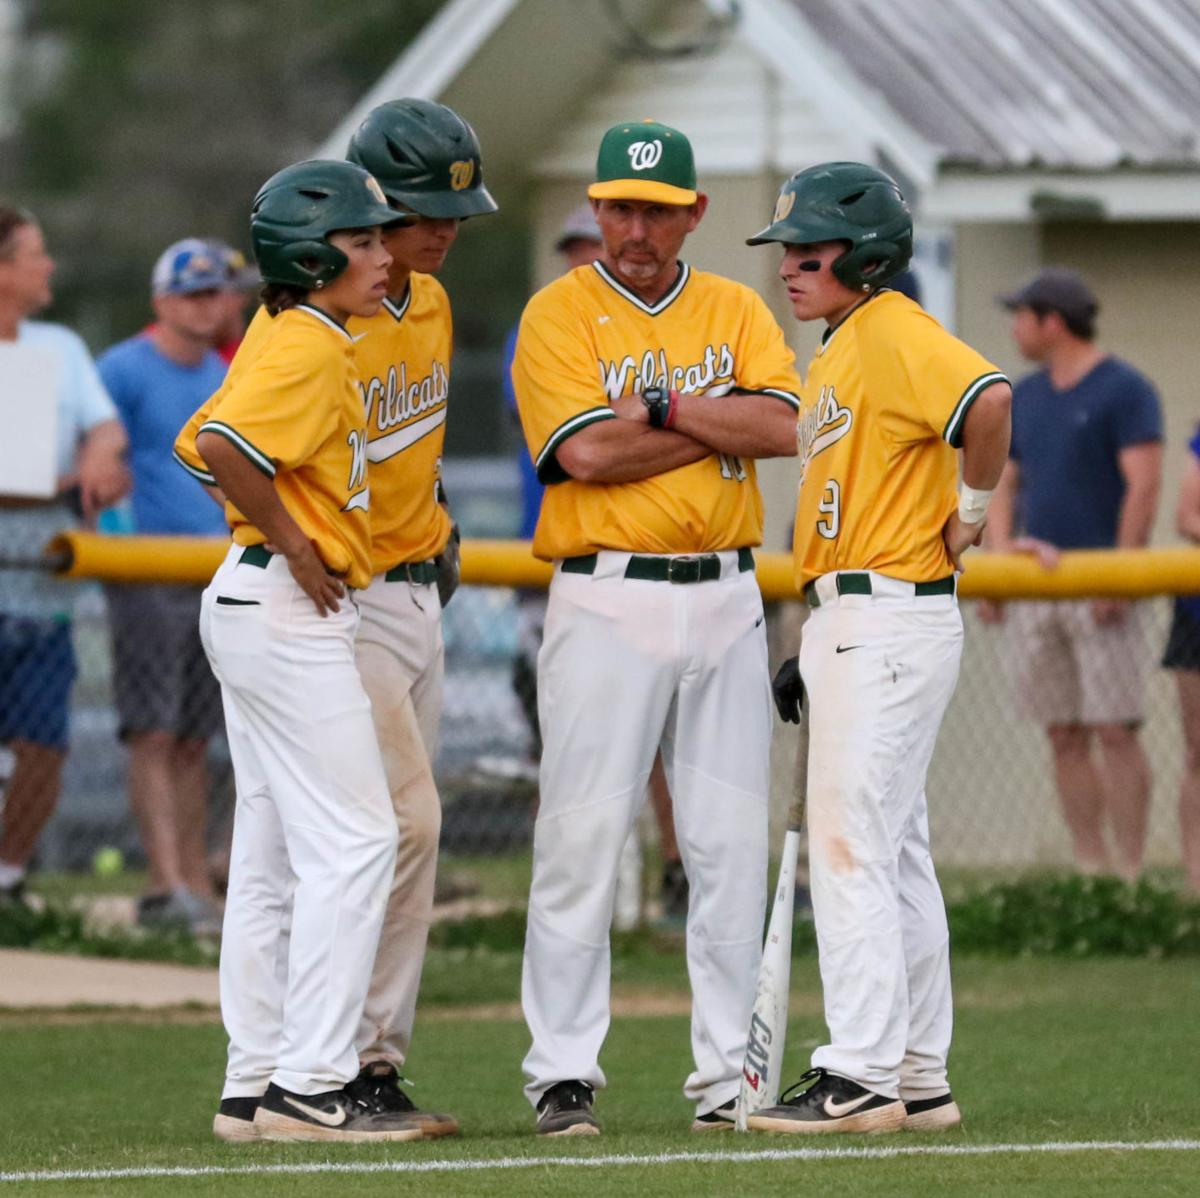 Walker baseball vs. Live Oak: coach Randy Sandifer